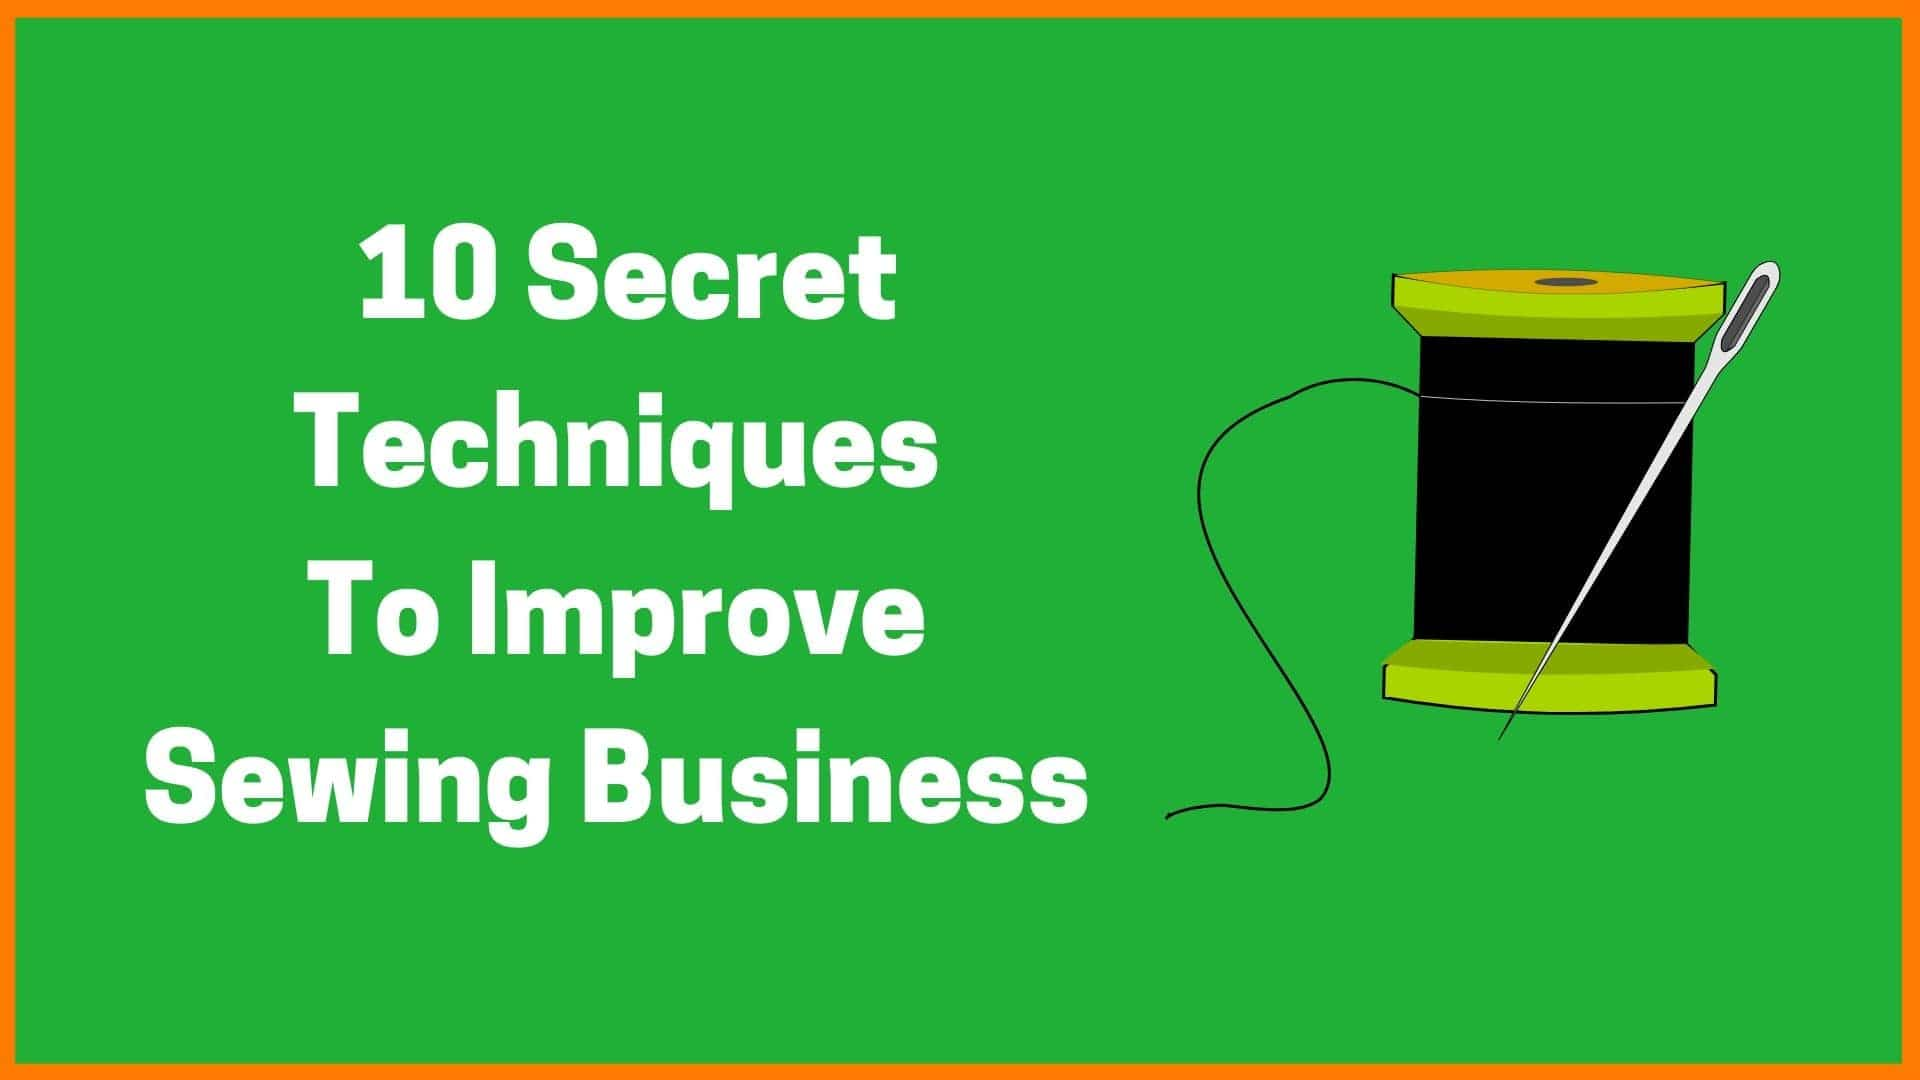 10 Techniques To Improve Your Sewing Business